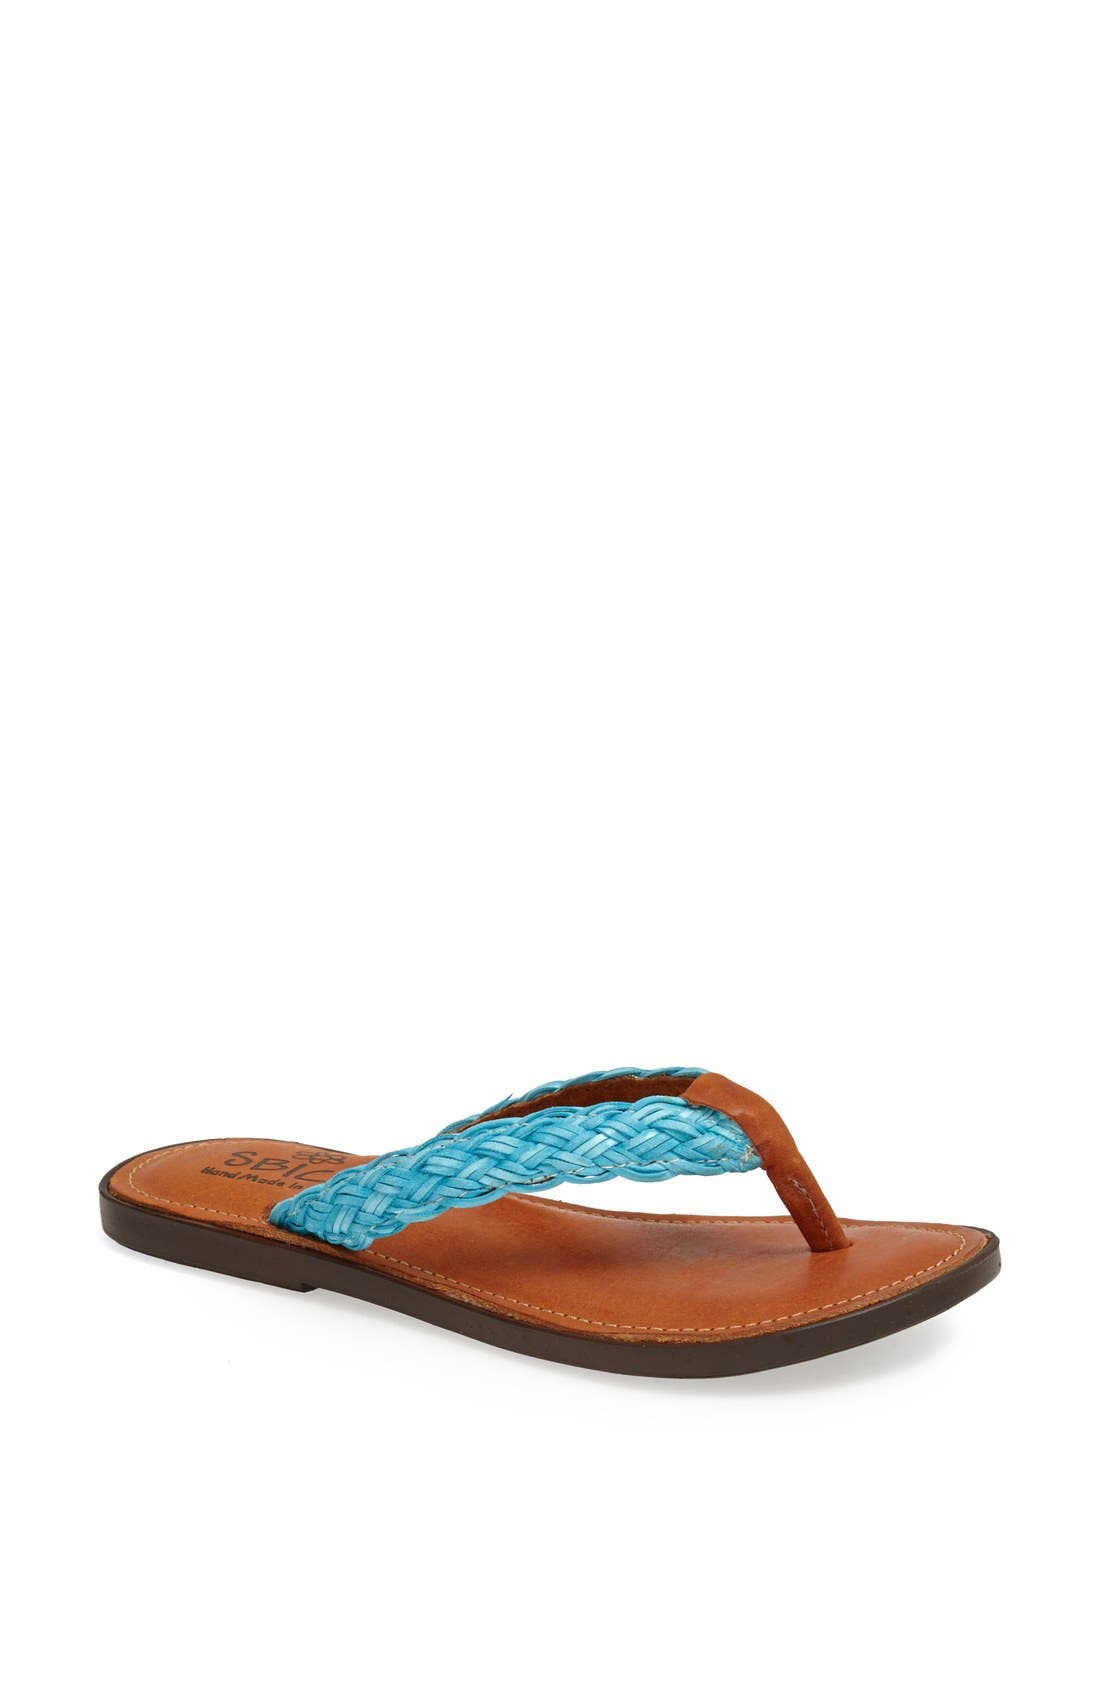 Main Image - Sbicca 'Abalone' Flip Flop